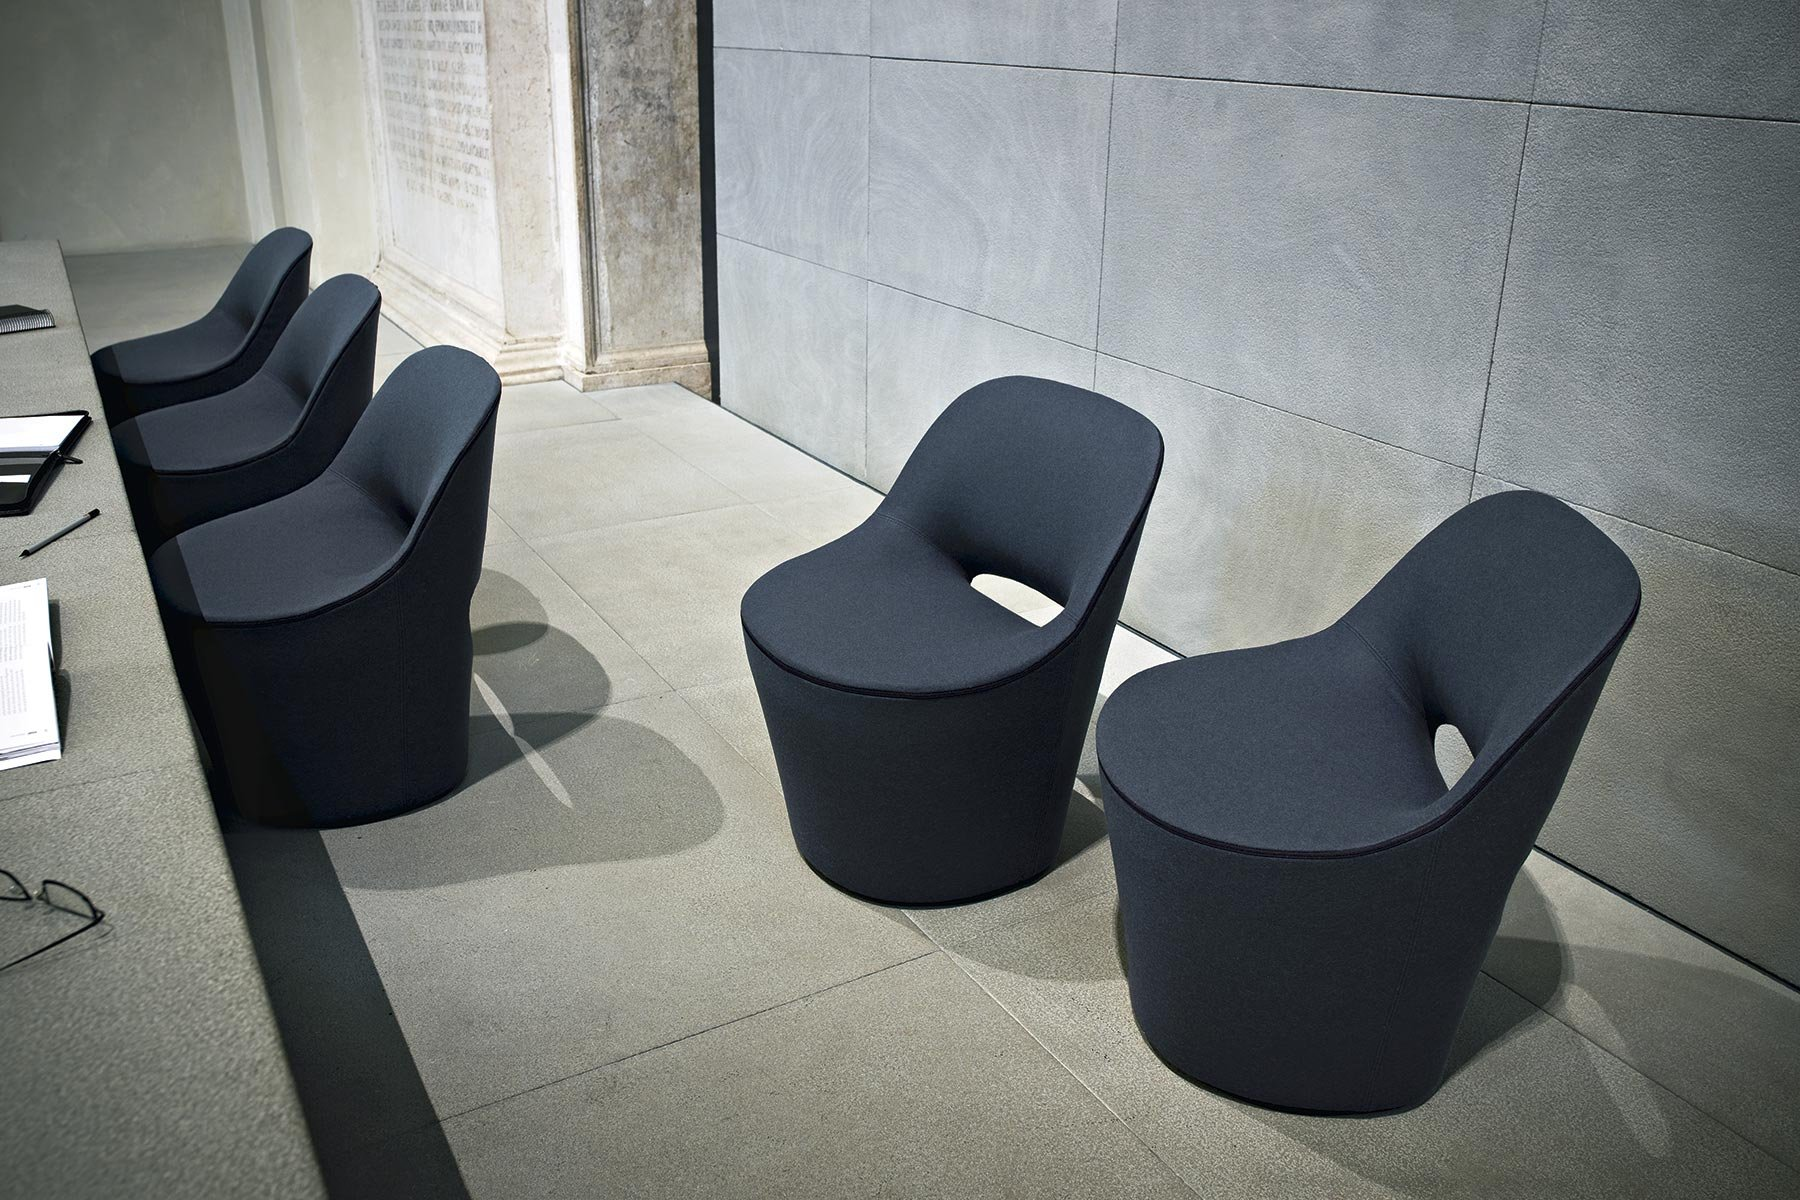 Eddy Chair lounge from Tacchini